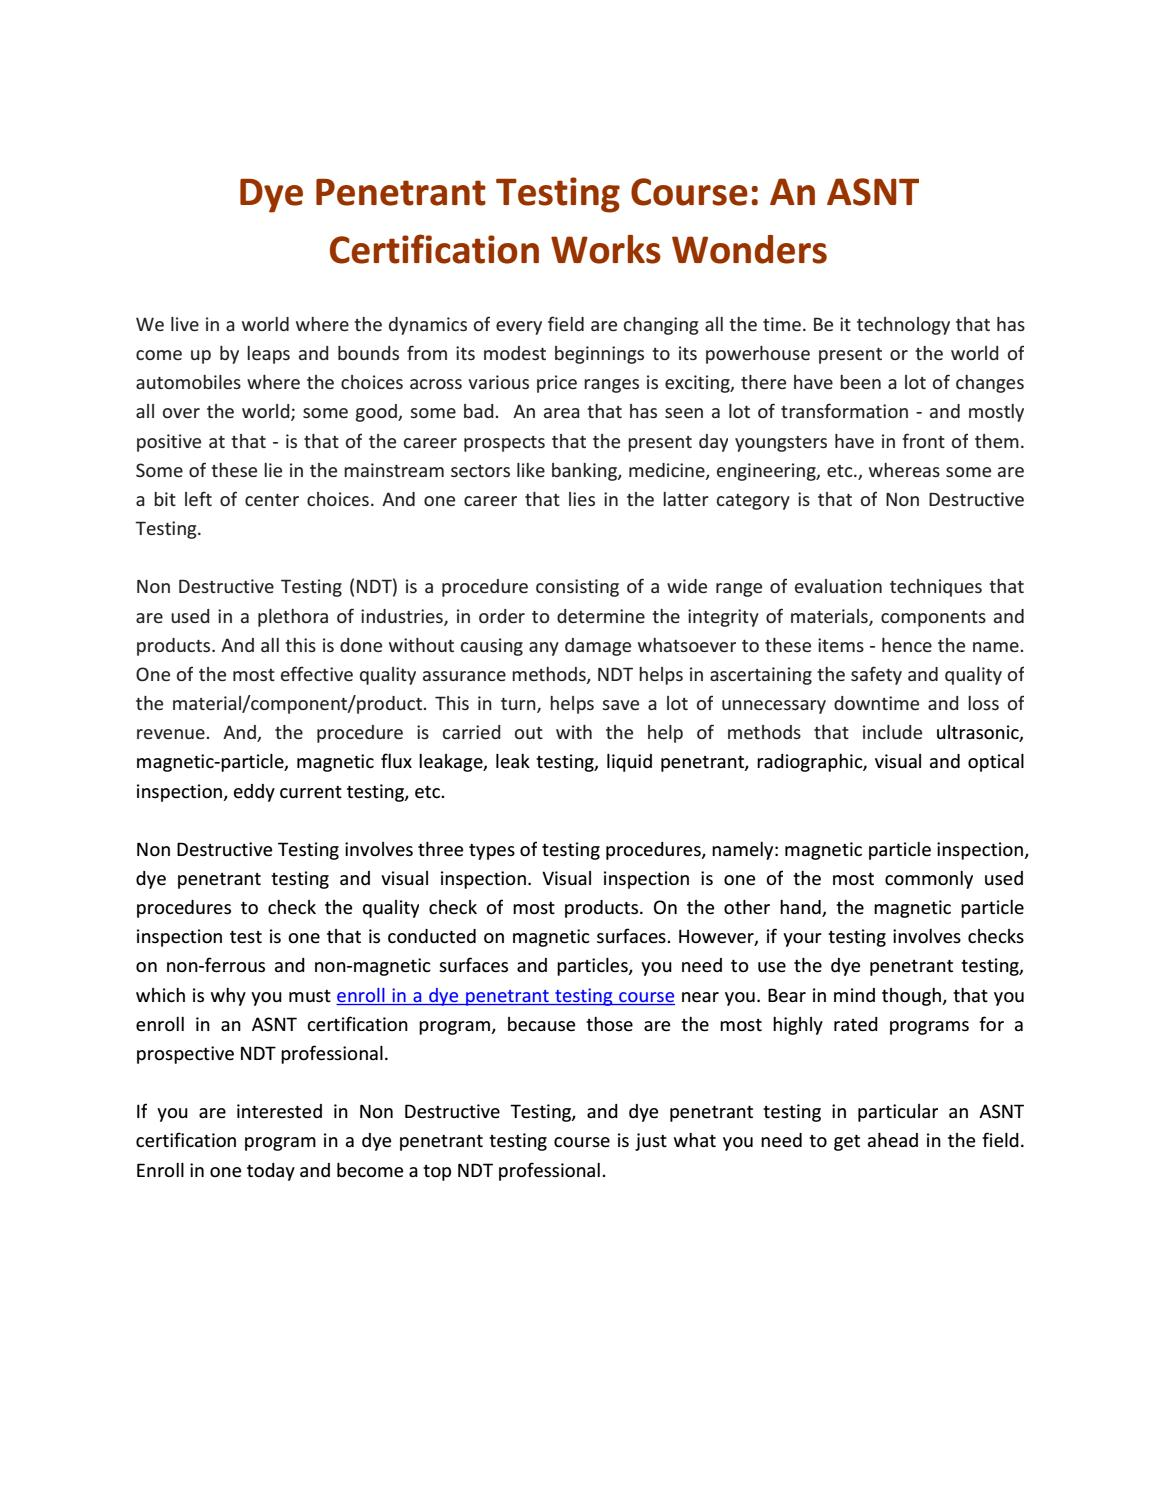 Dye Penetrant Testing Course An Asnt Certification Works Wonders By